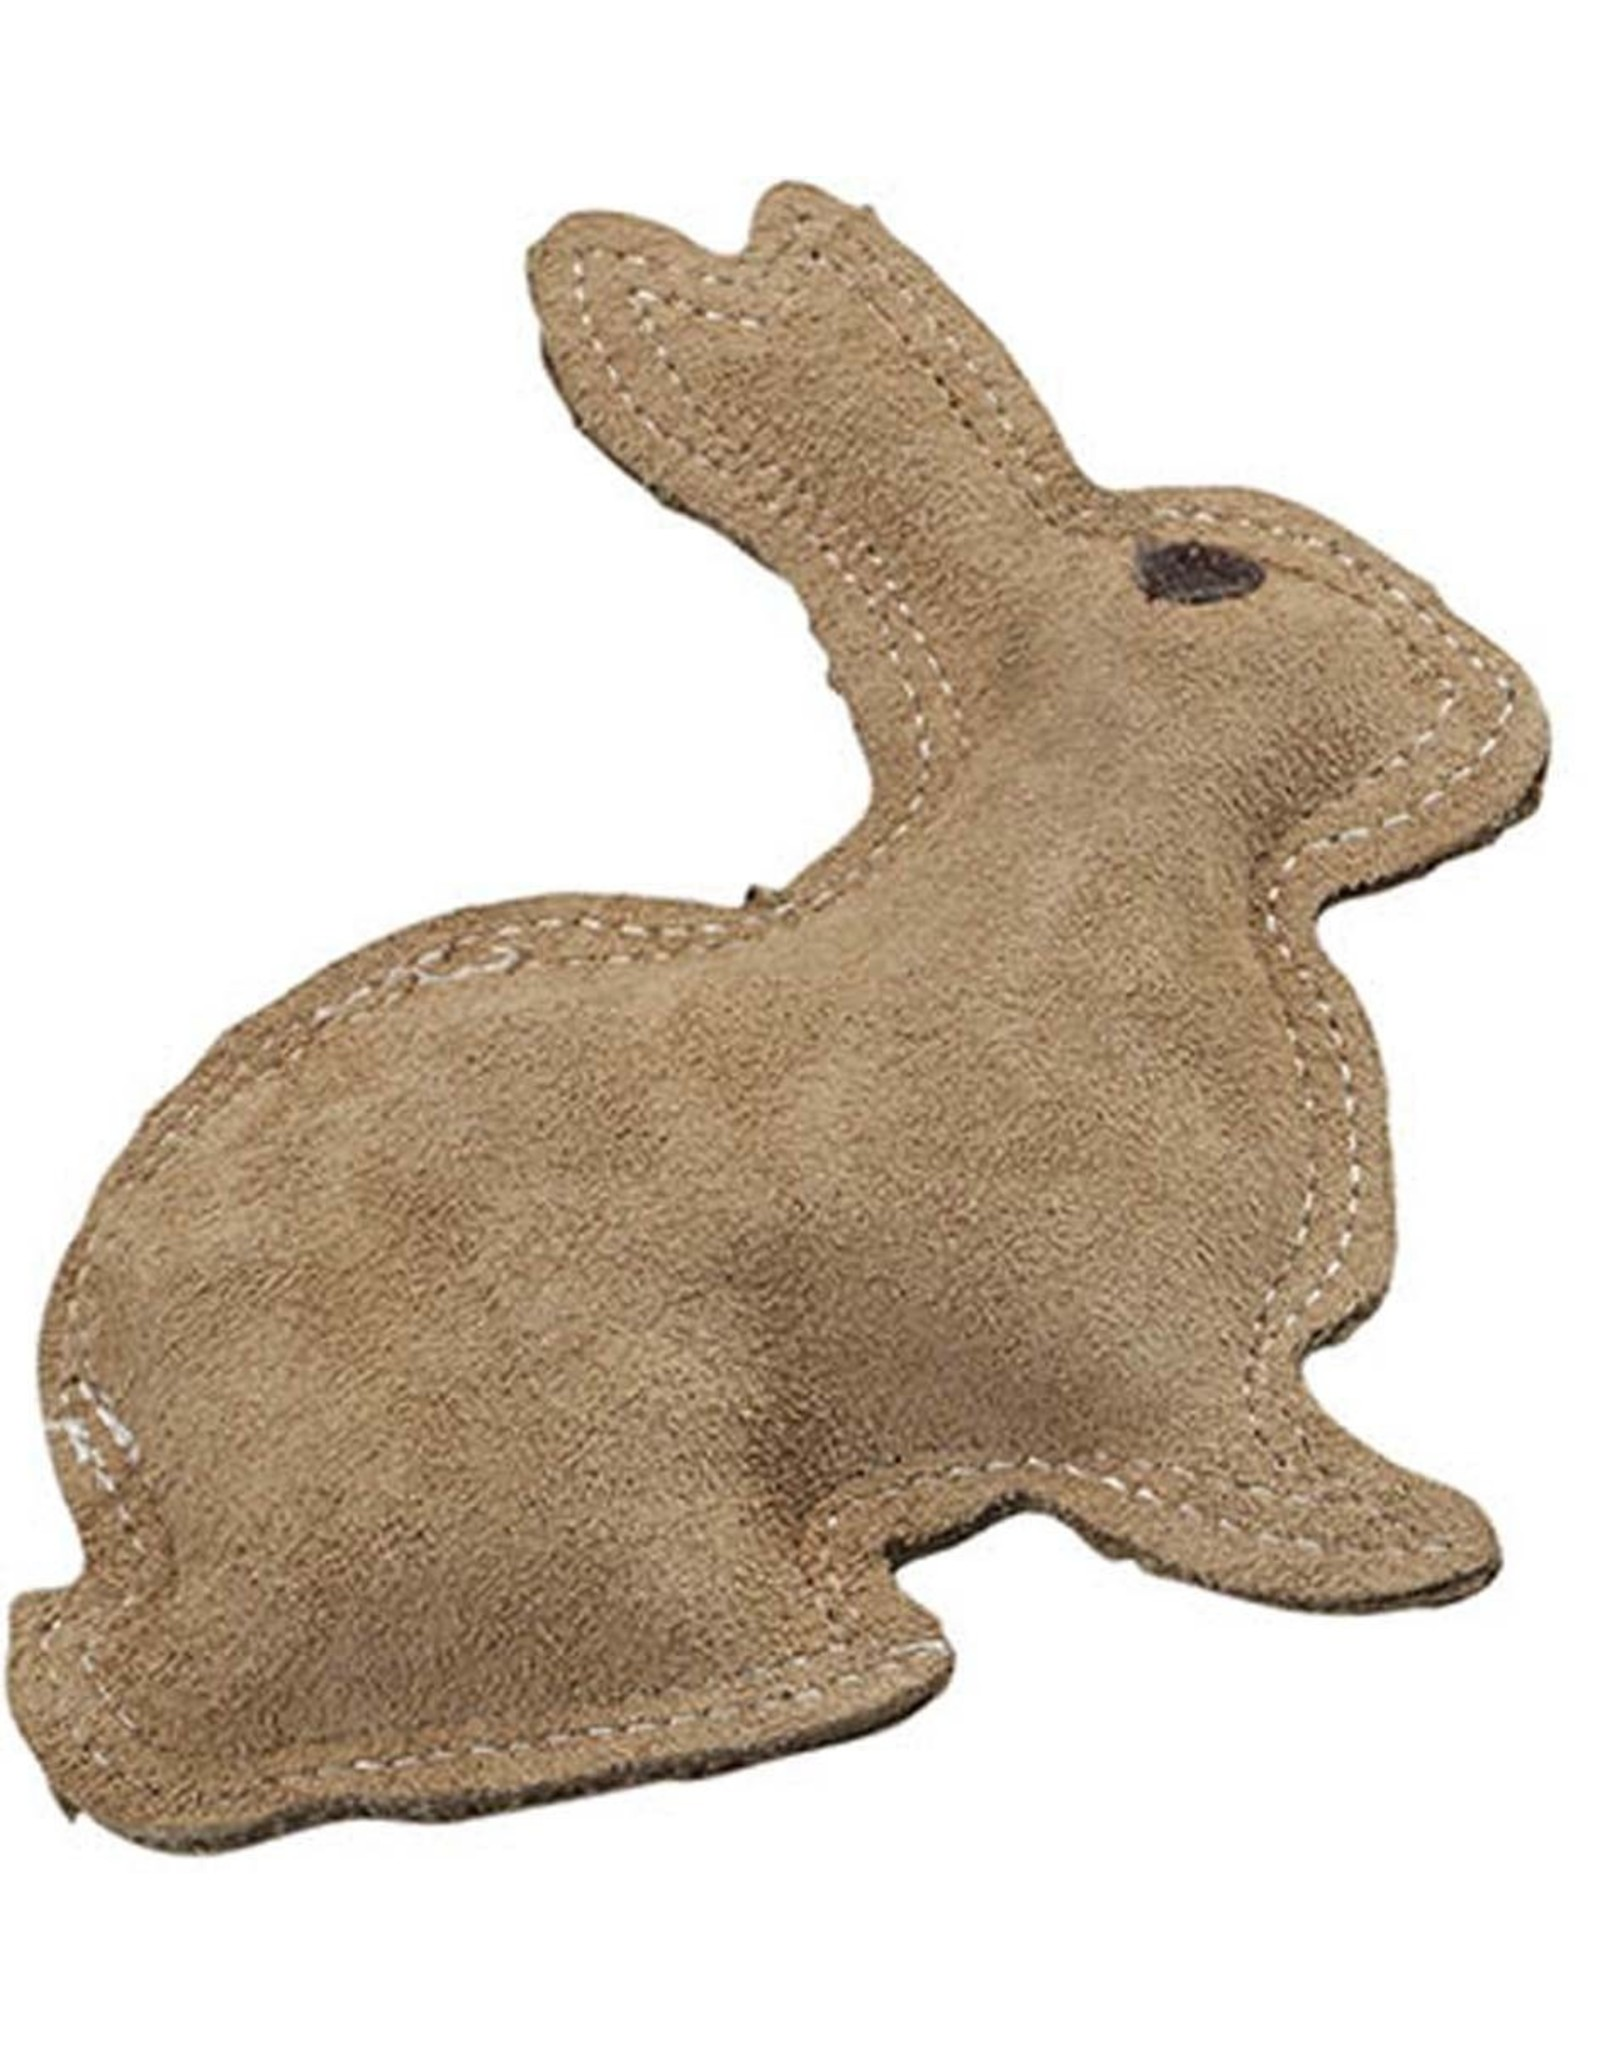 Ethical Products Ethical Products Spot Dura-Fused Leather Rabbit - S